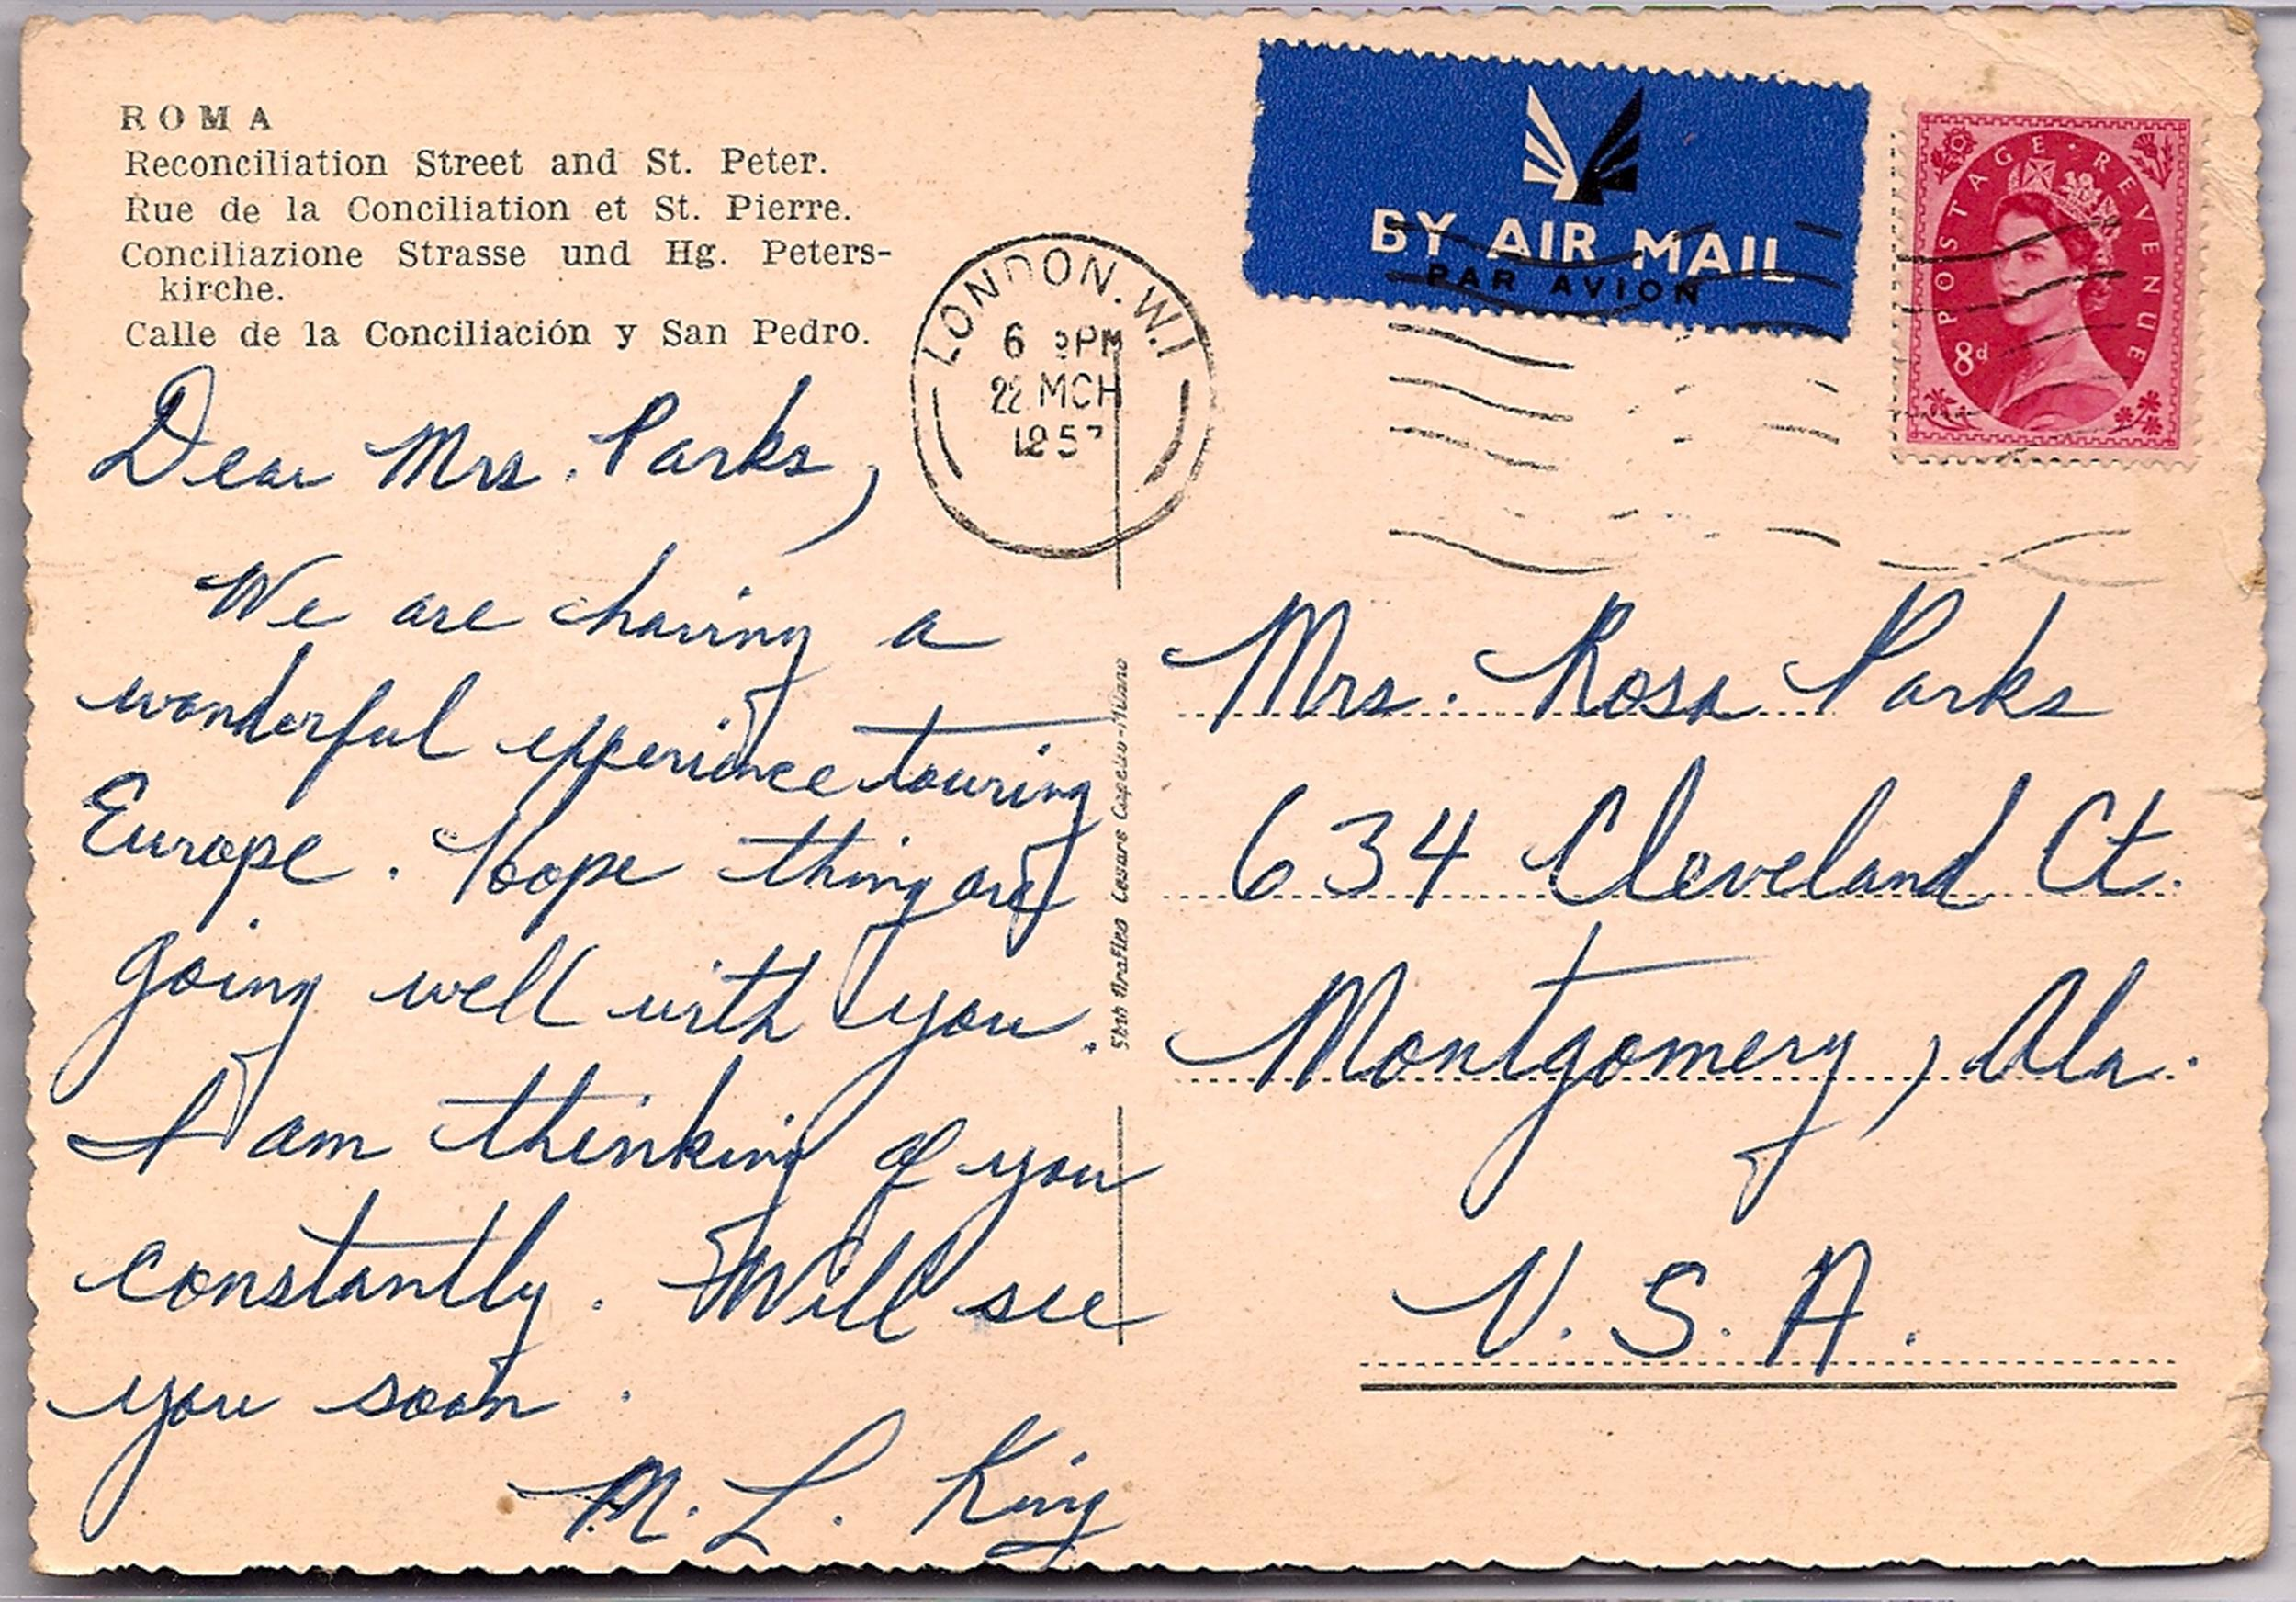 Image: Postcard from Dr. King to Rosa Parks